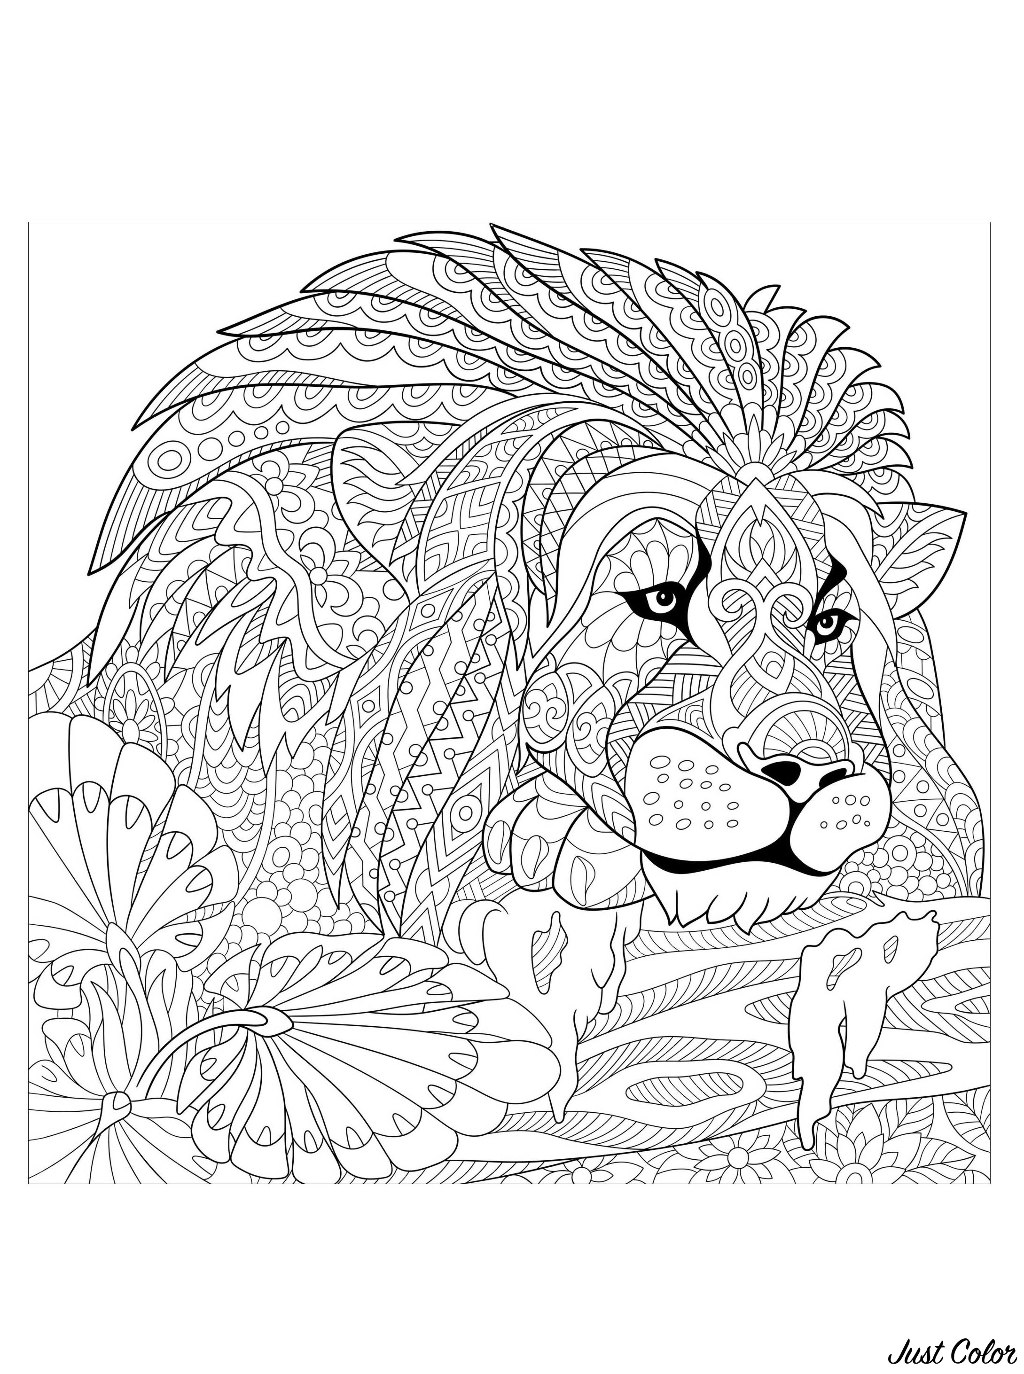 Lion king with patterns Lions Adult Coloring Pages